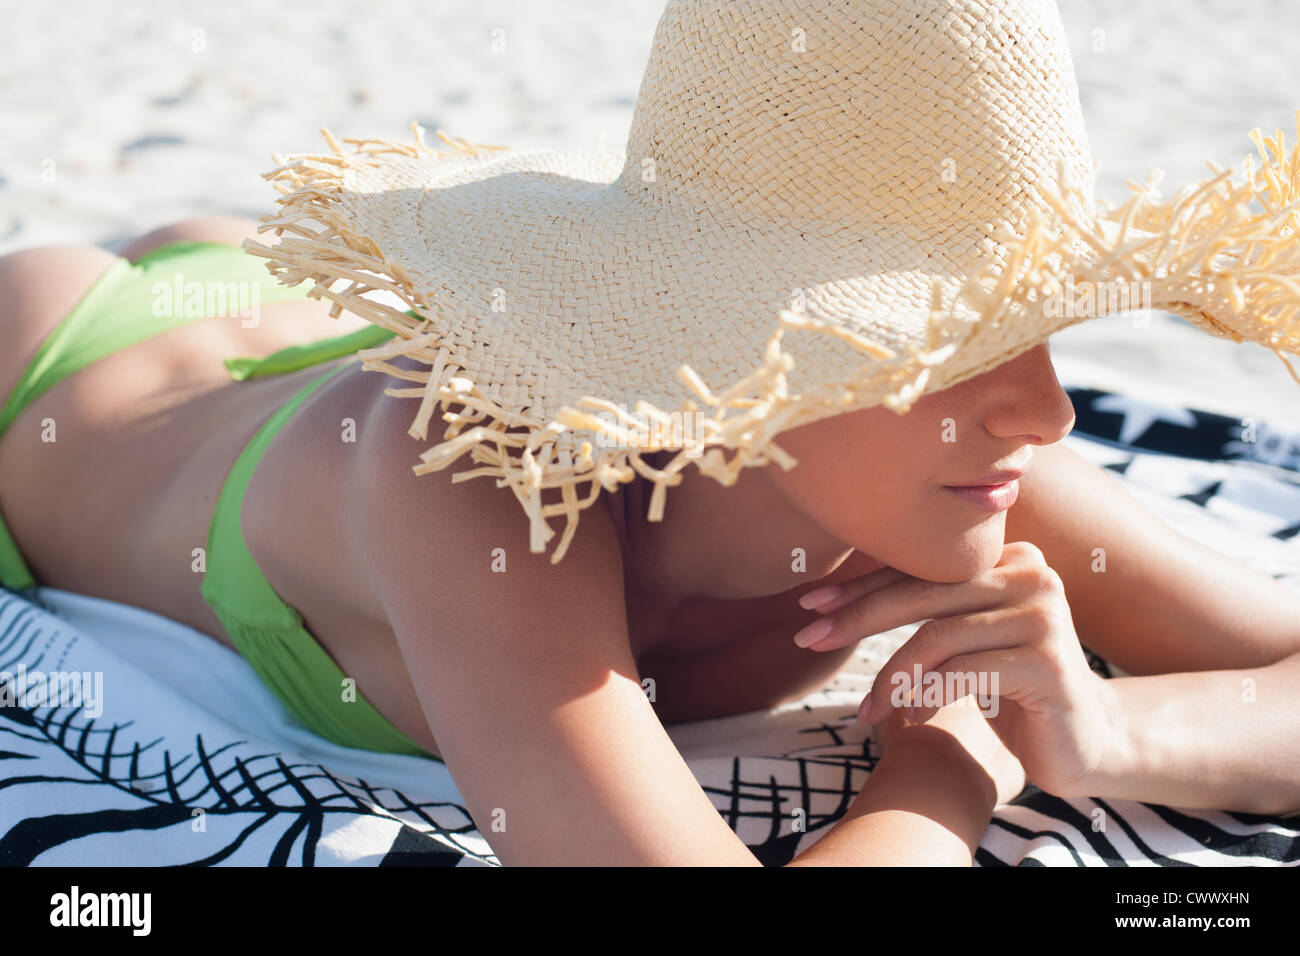 Woman wearing straw hat on beach - Stock Image